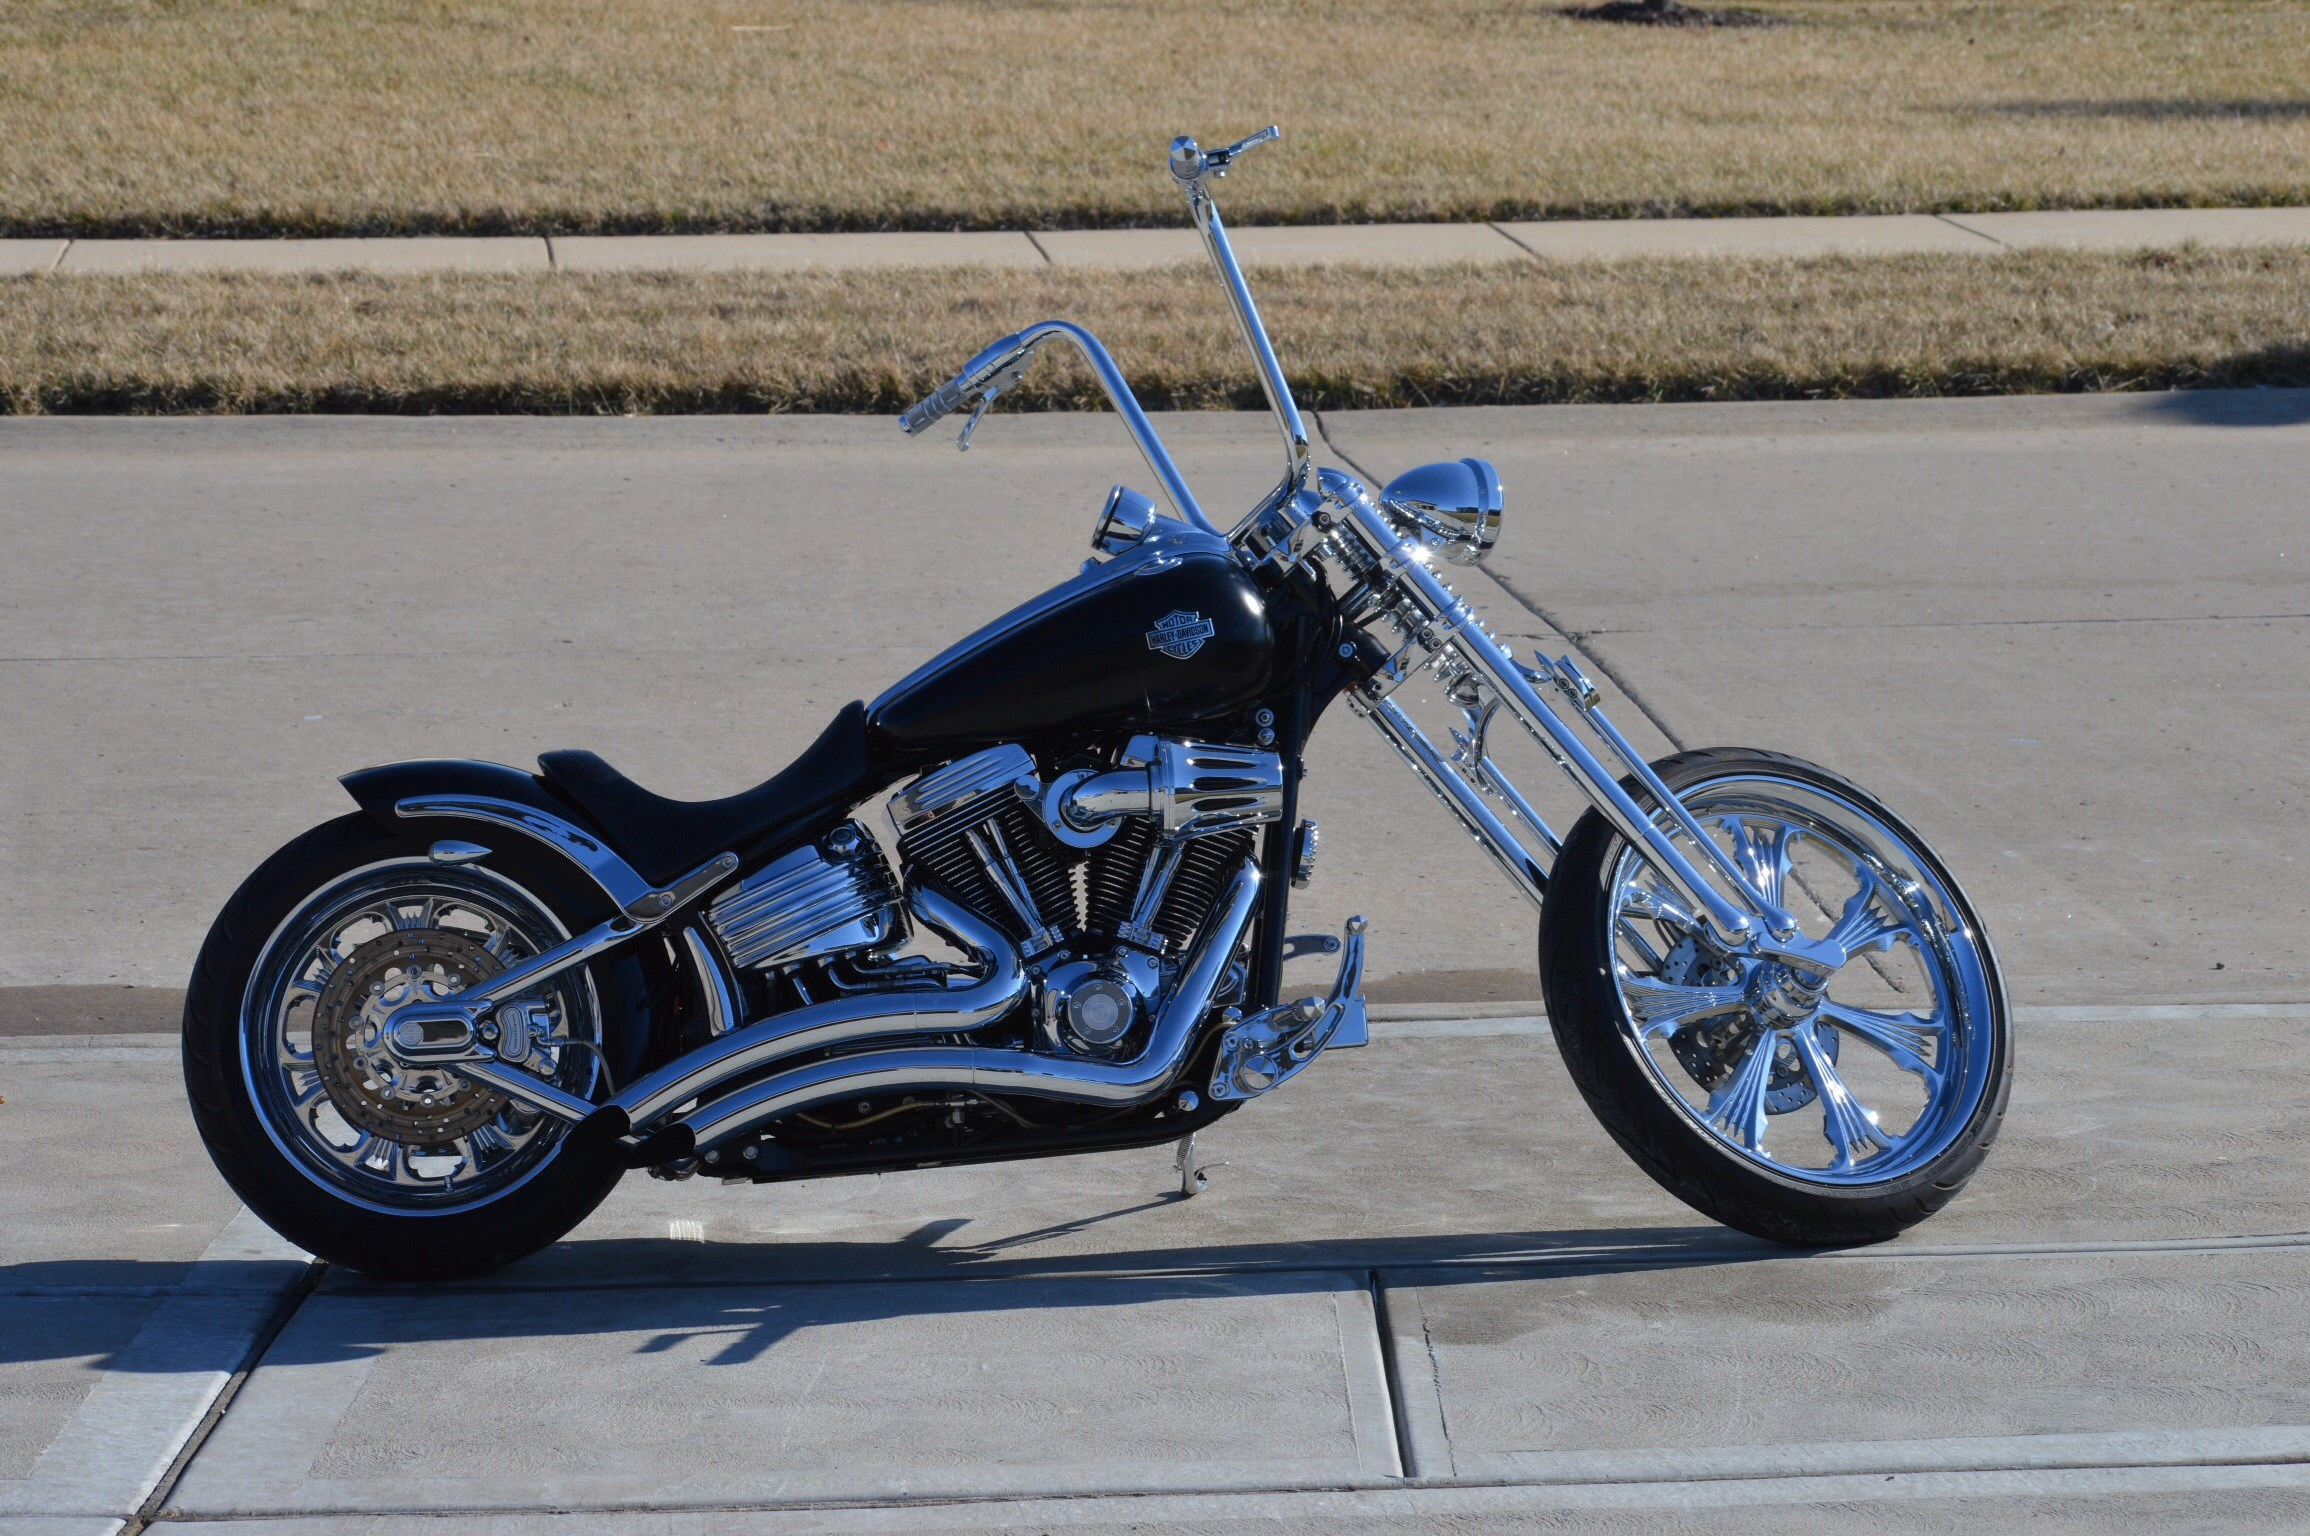 2008 harley davidson fxcwc softail rocker c matte black wentzville missouri 613979. Black Bedroom Furniture Sets. Home Design Ideas